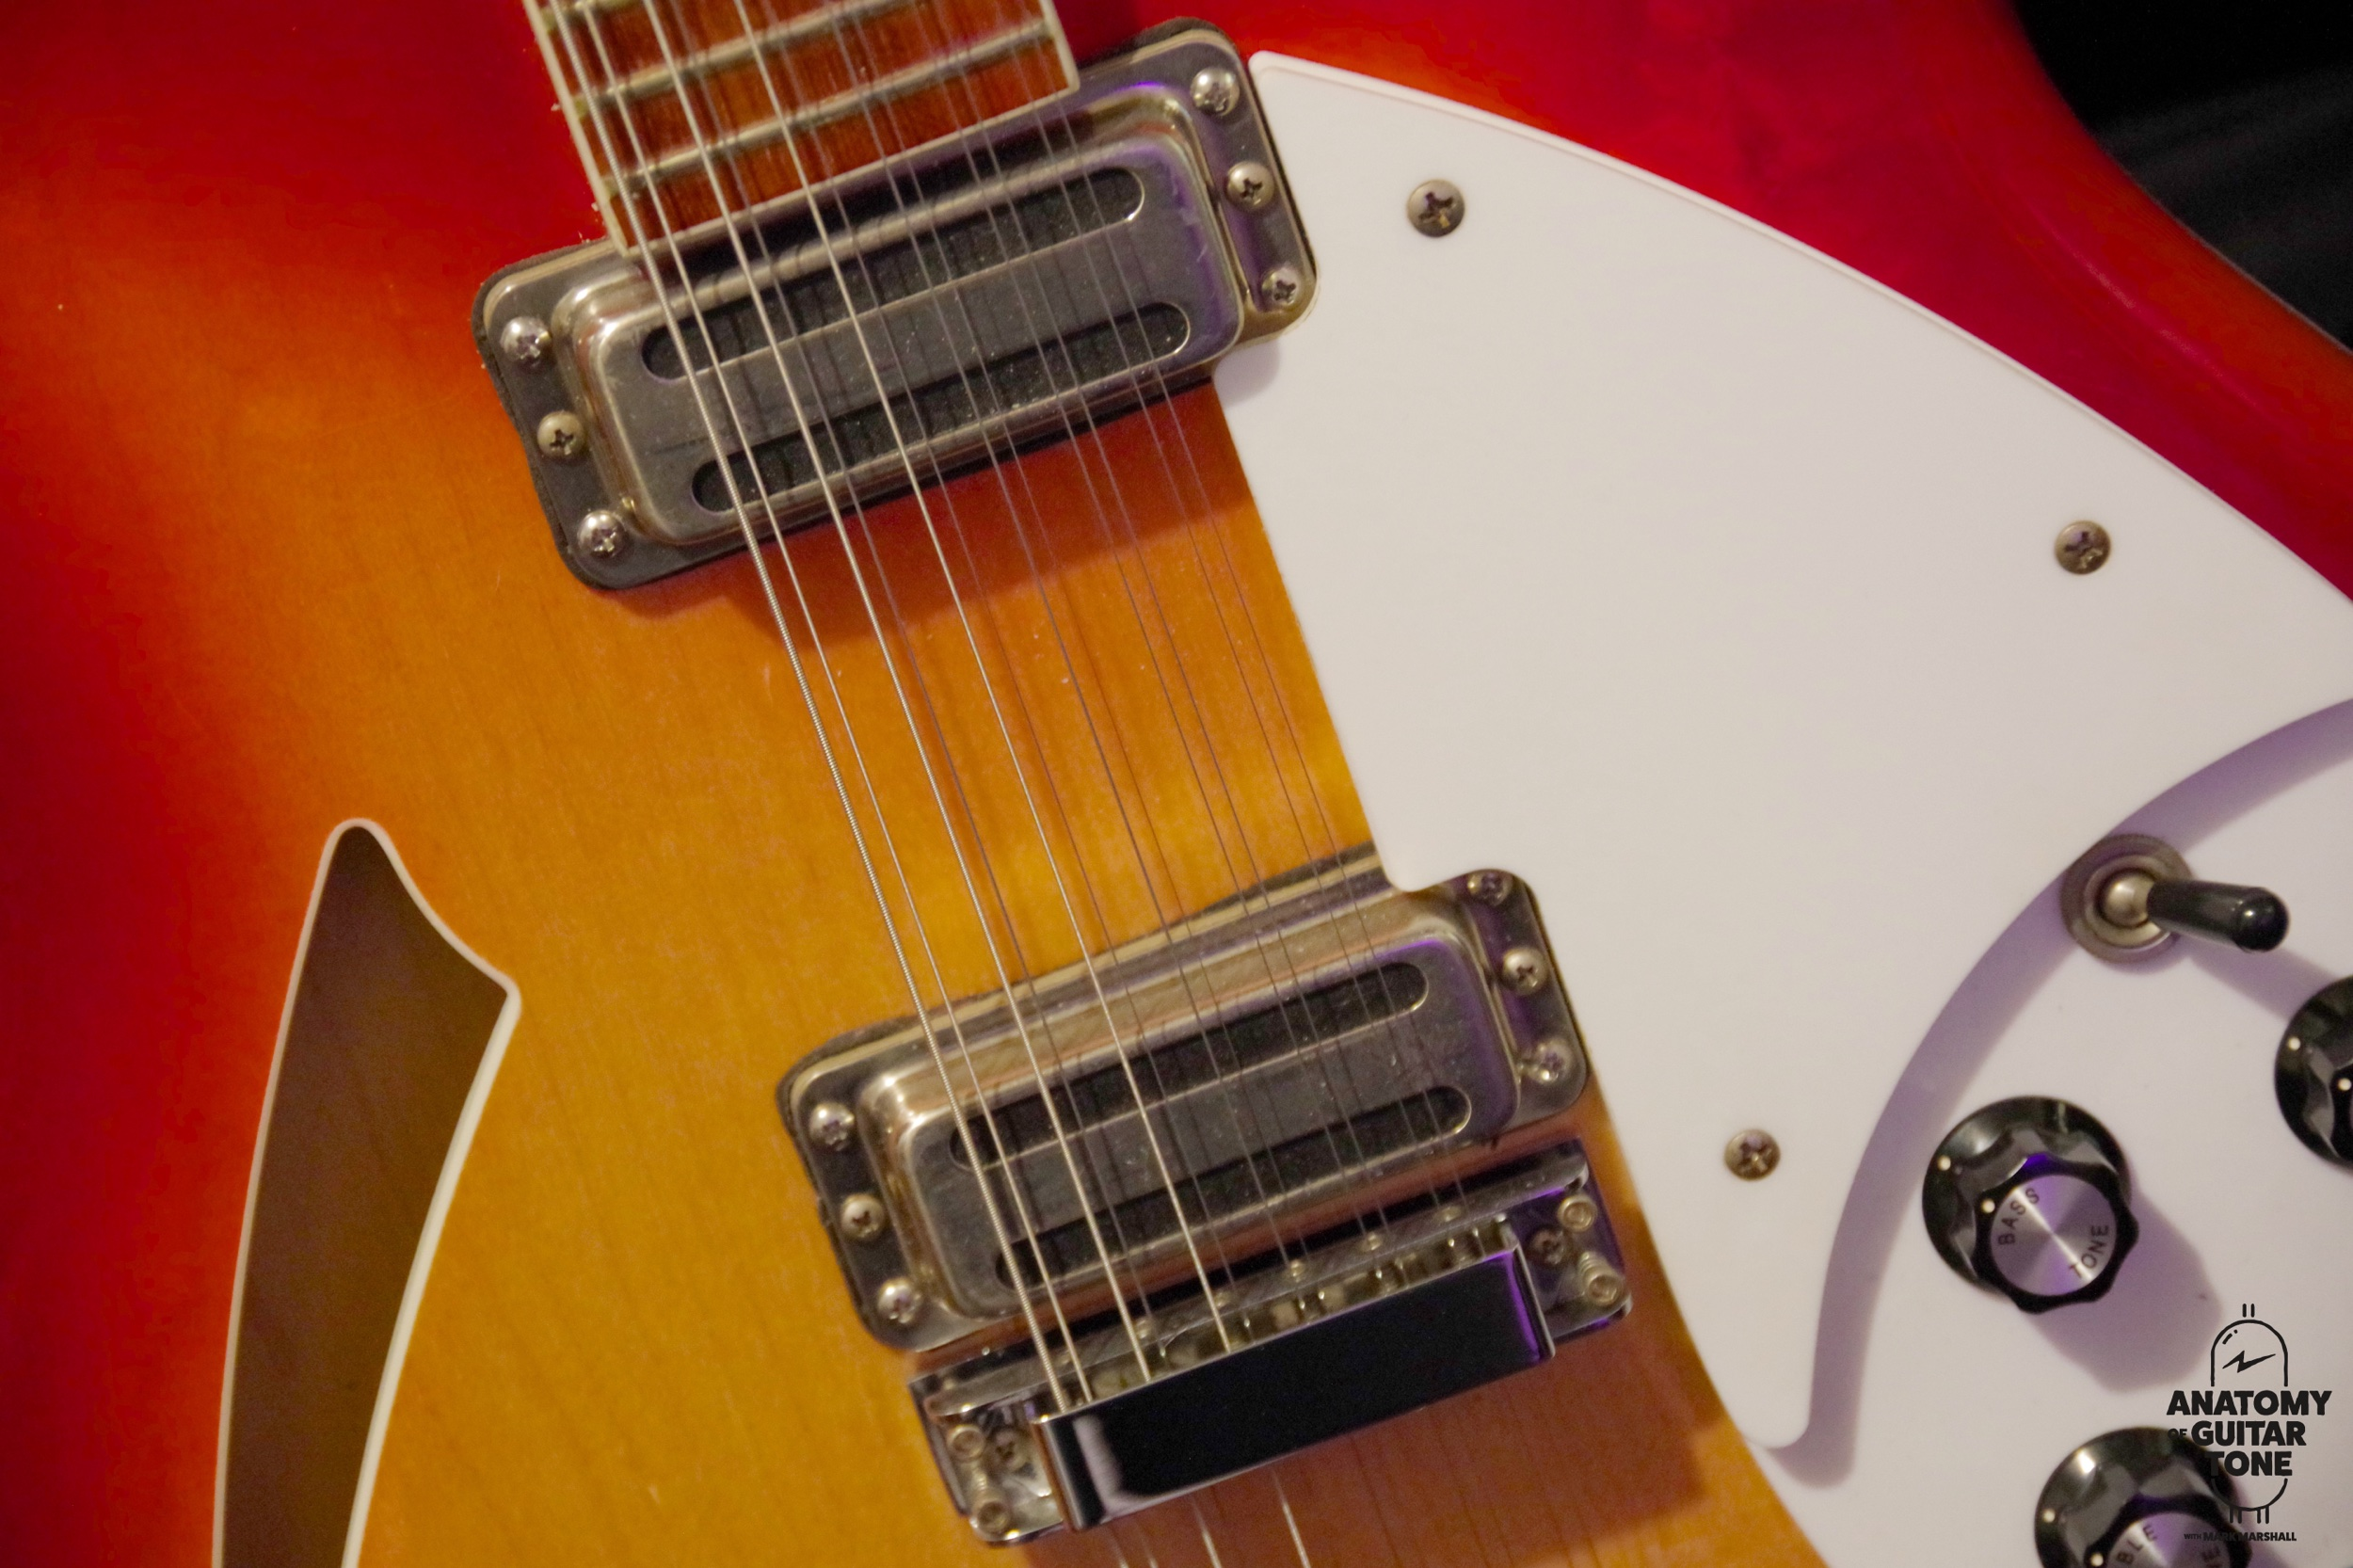 2001 rickenbacker 360/12 with gemini toaster pickups and vintage wiring